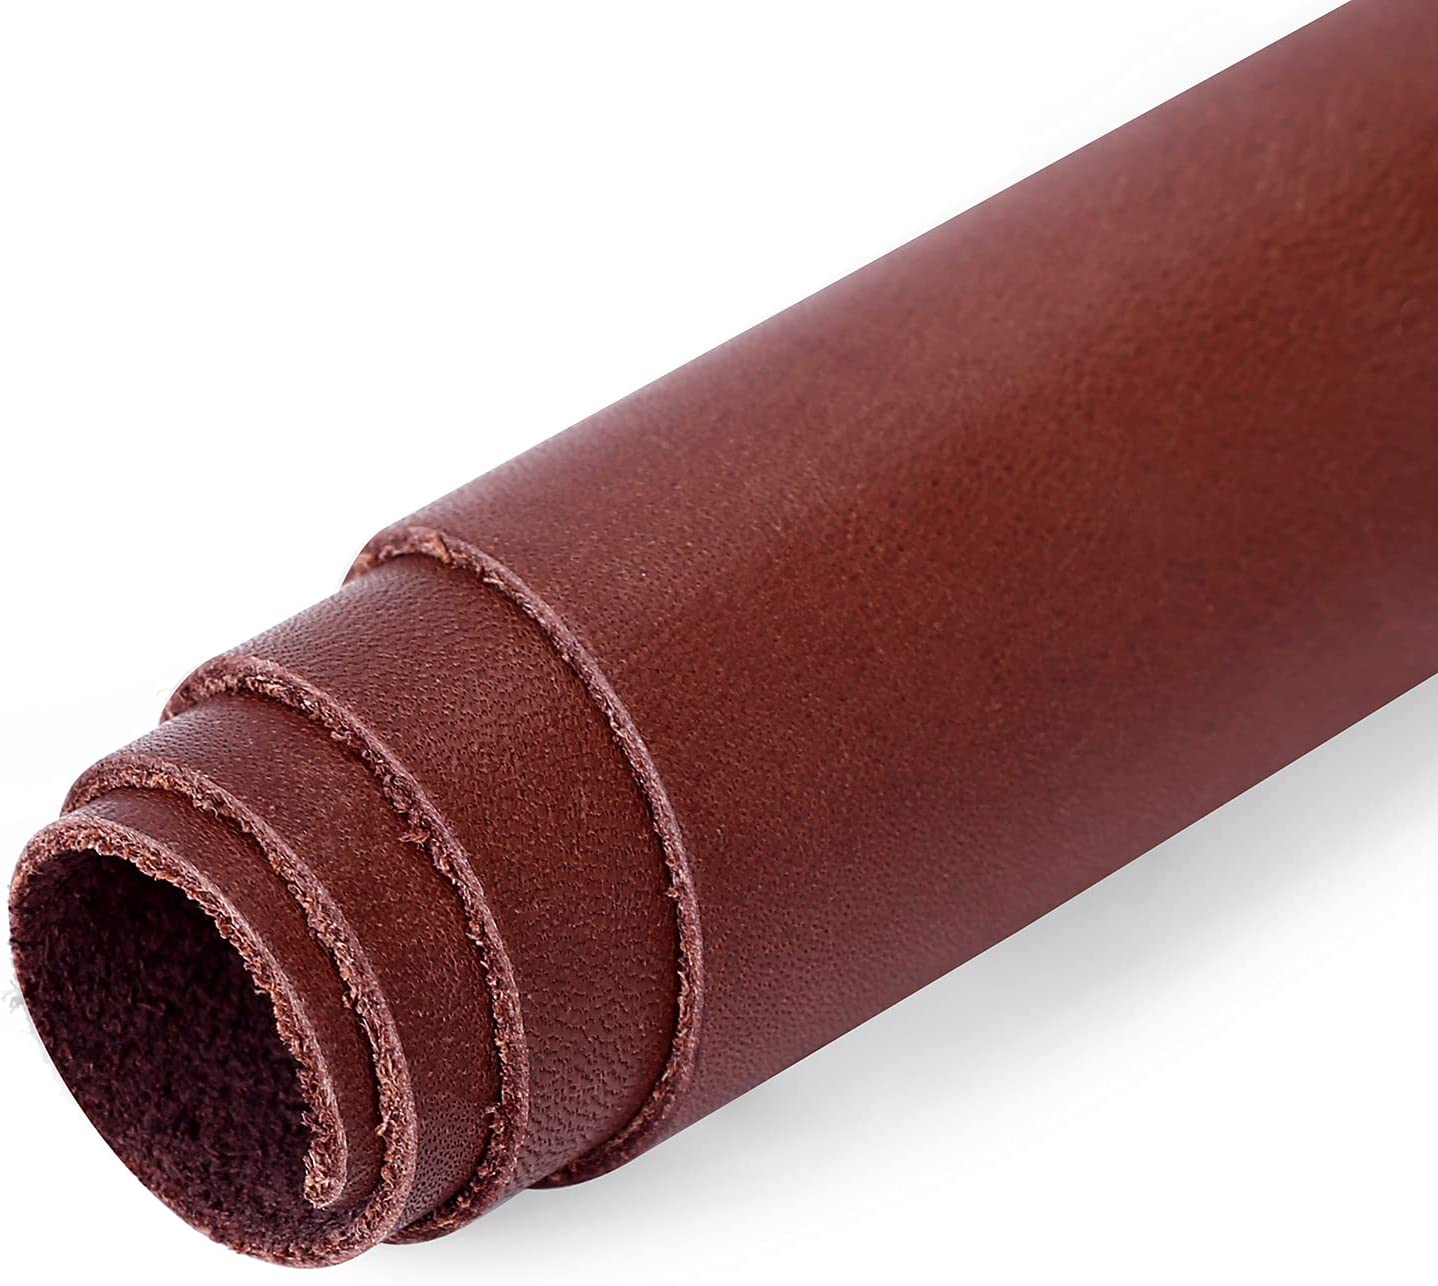 2 PCS Natural Full Grain Cow L Leather - 40% OFF Cheap Super special price Sale Hides Tooling